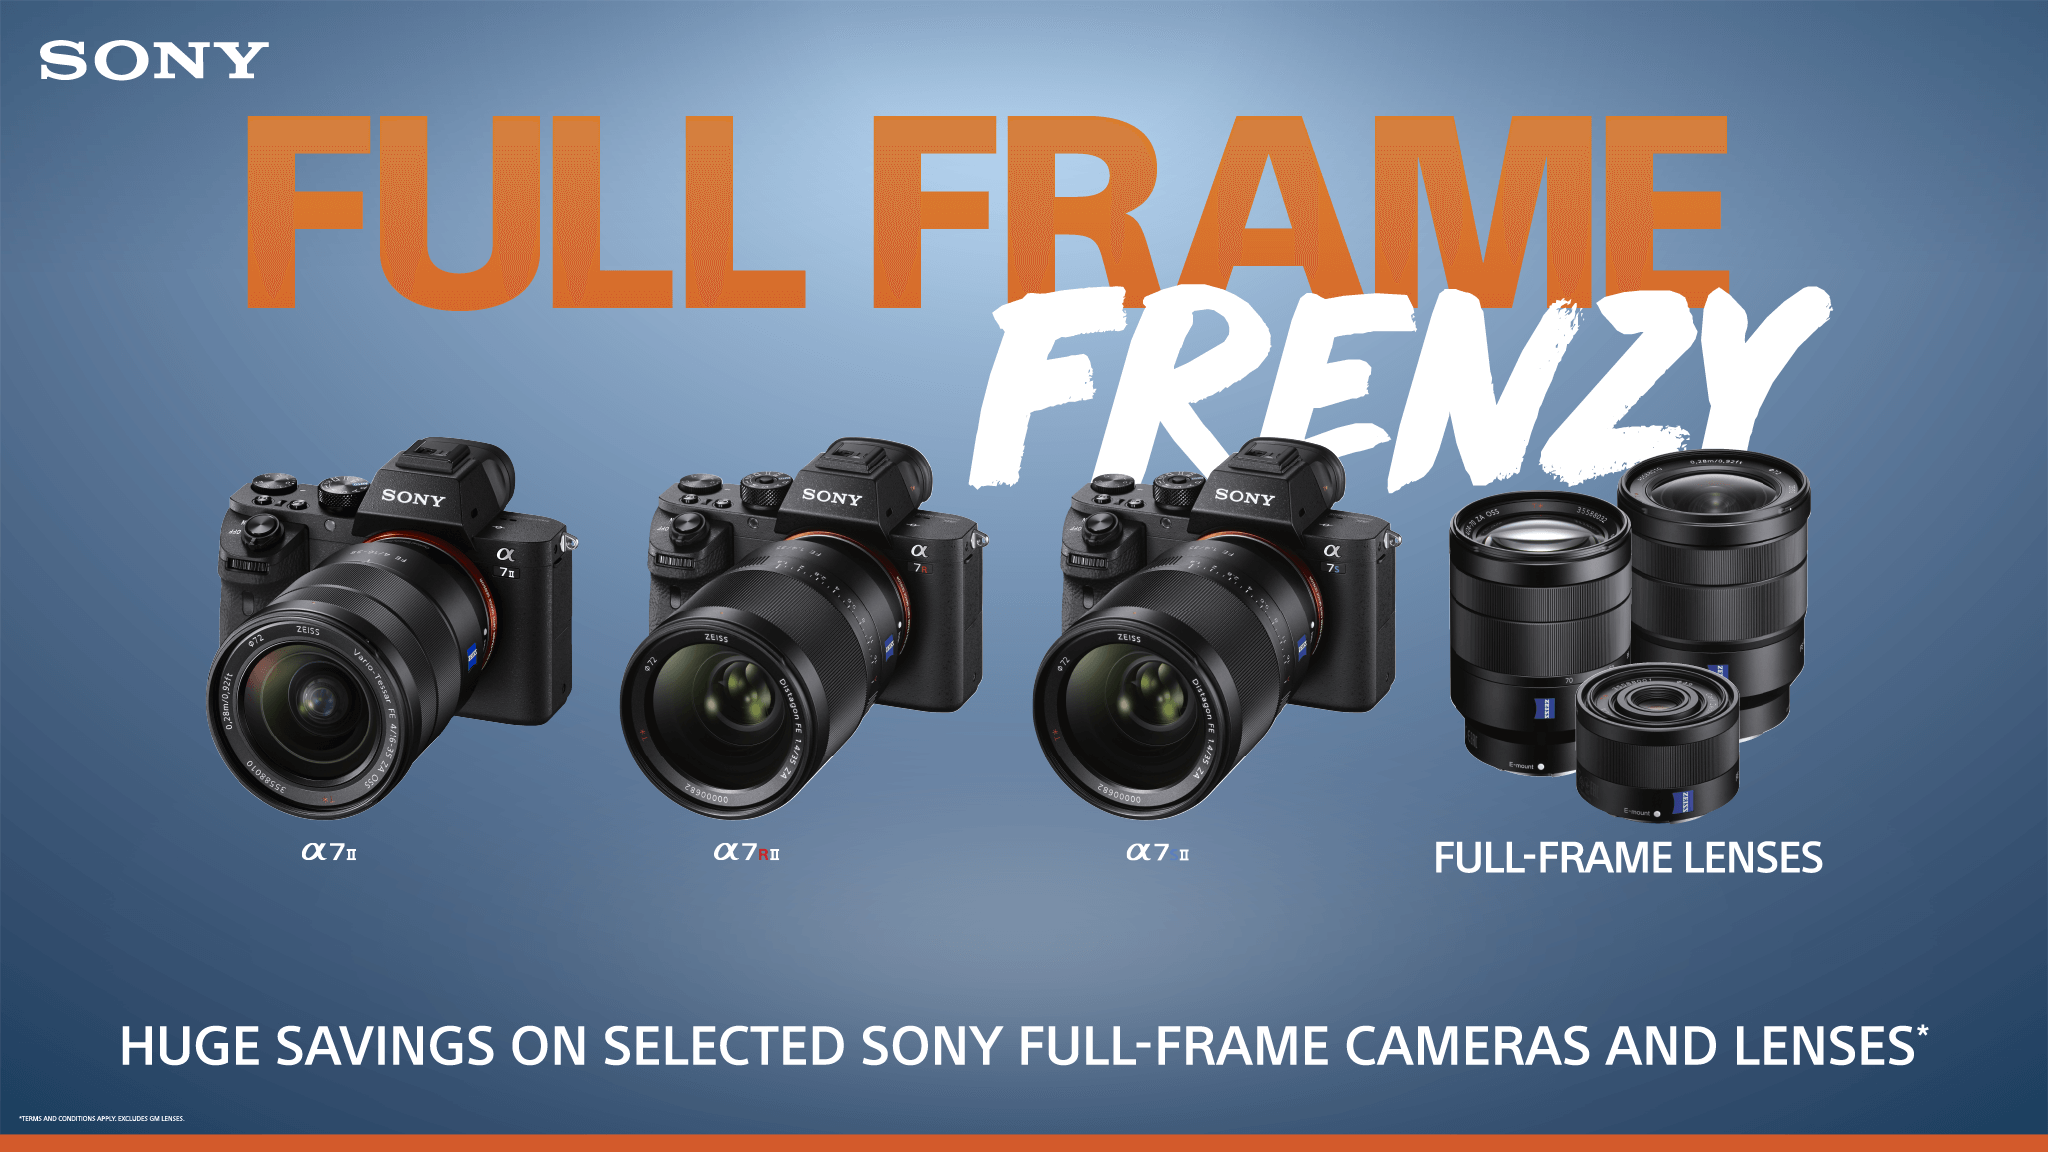 Sony Full Frame Frenzy on Now - 4 Days Only – CamBuy Camera Store